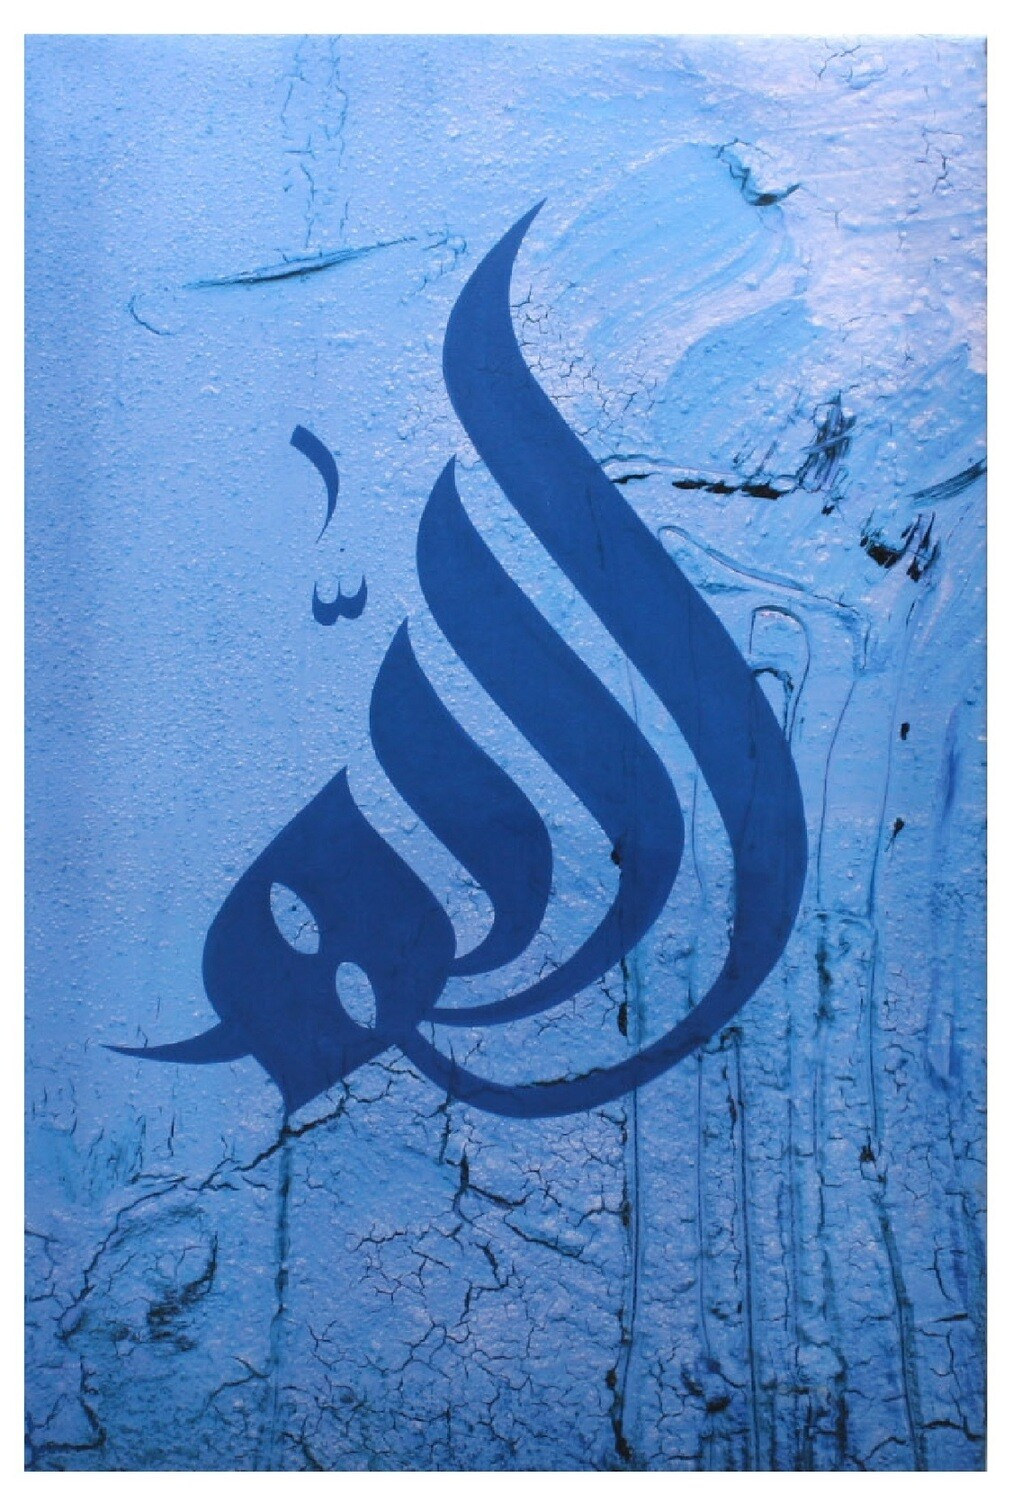 Allah Stylistic Abstract Blue Modern Design Original Giclée Canvas